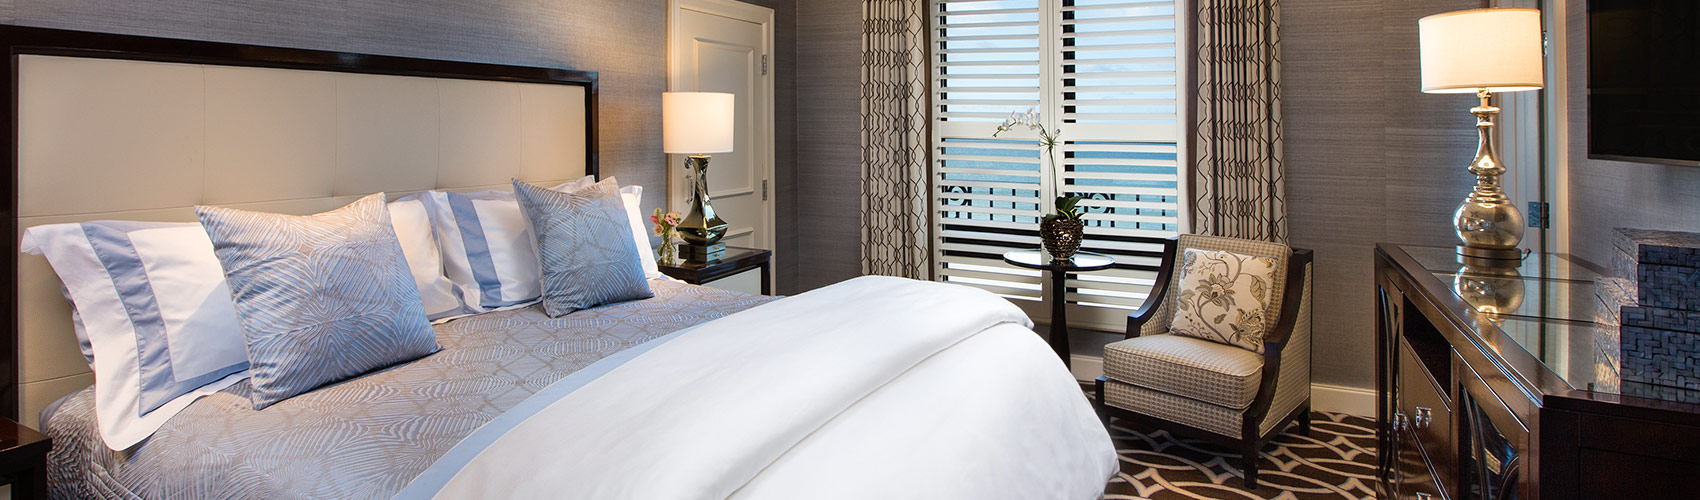 Flagler Club Guest Room with Ocean View bed